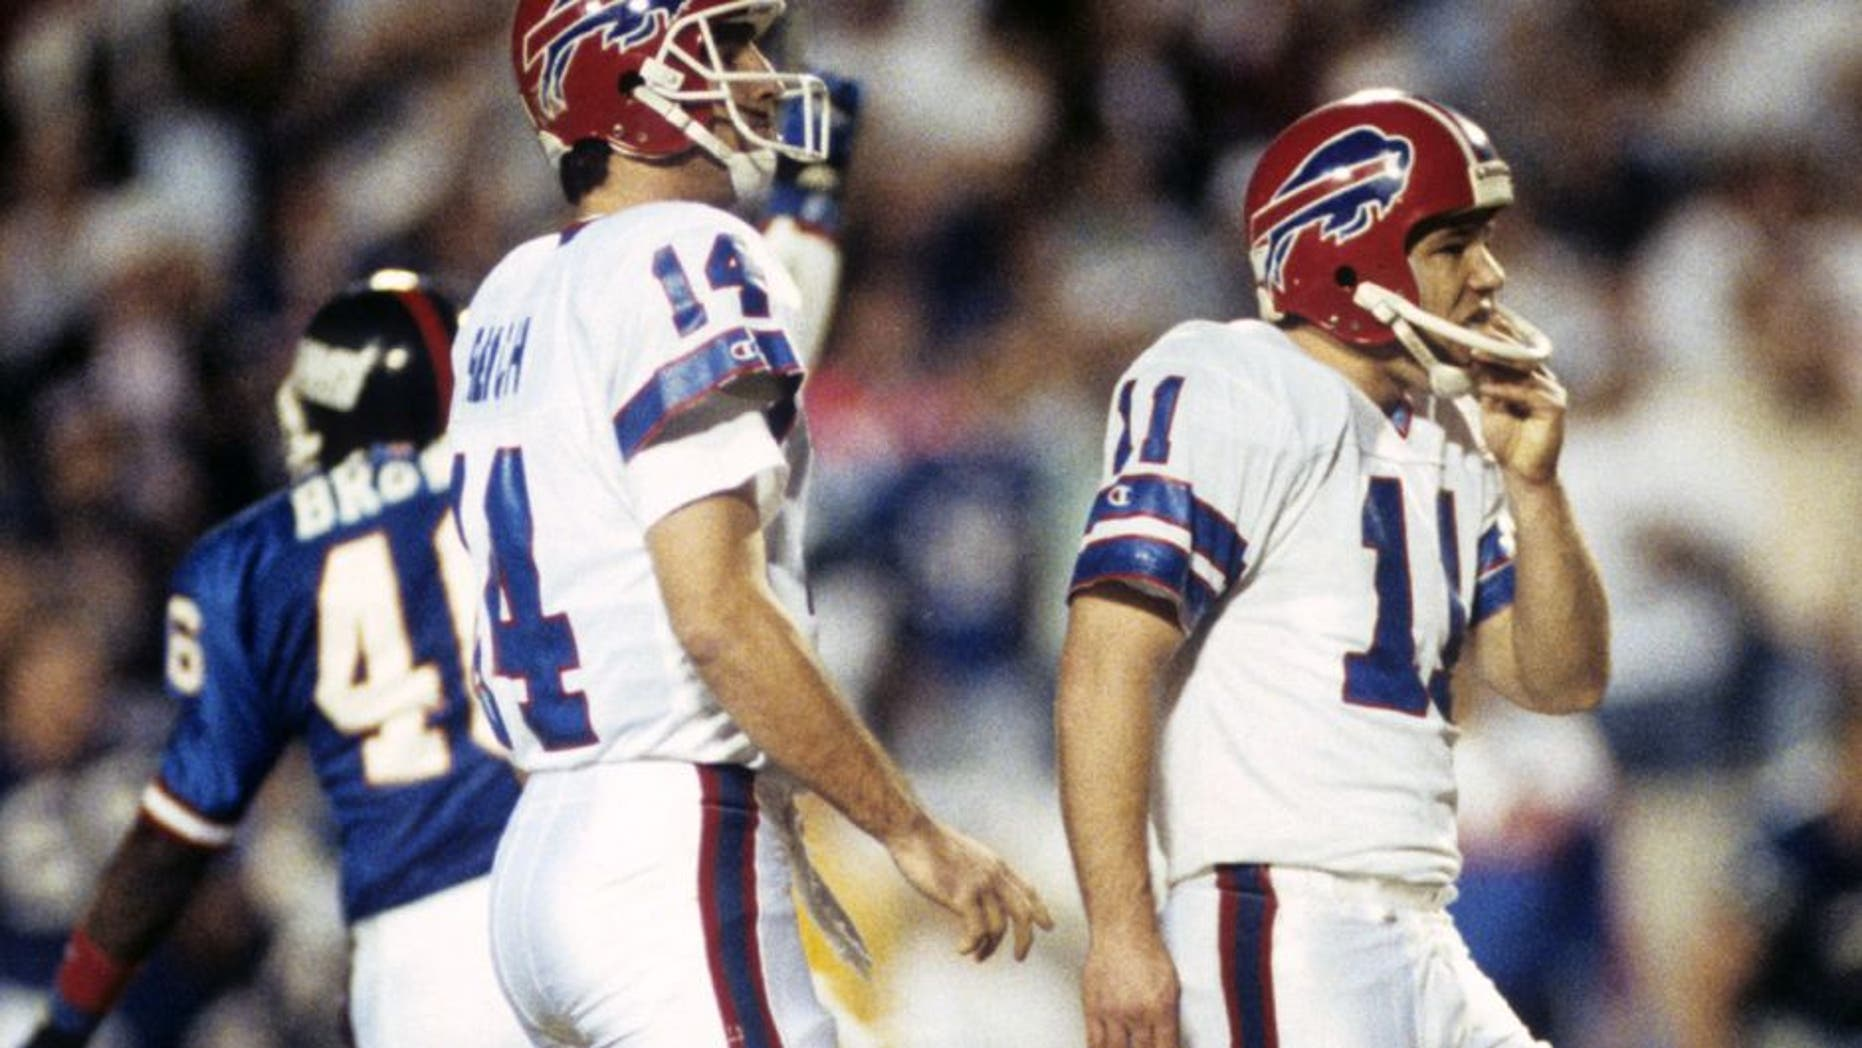 Buffalo Bills quarterback Frank Reich (14) and kicker Scott Norwood (11) watch in dismay as Norwood's last-second game-winning field goal attempt flies wide right during Super Bowl XXV, a 20-19 loss to the New York Giants on January 27, 1991, at Tampa Stadium in Tampa, Florida. (Photo by Rob Brown/Getty Images) *** Local Caption ***